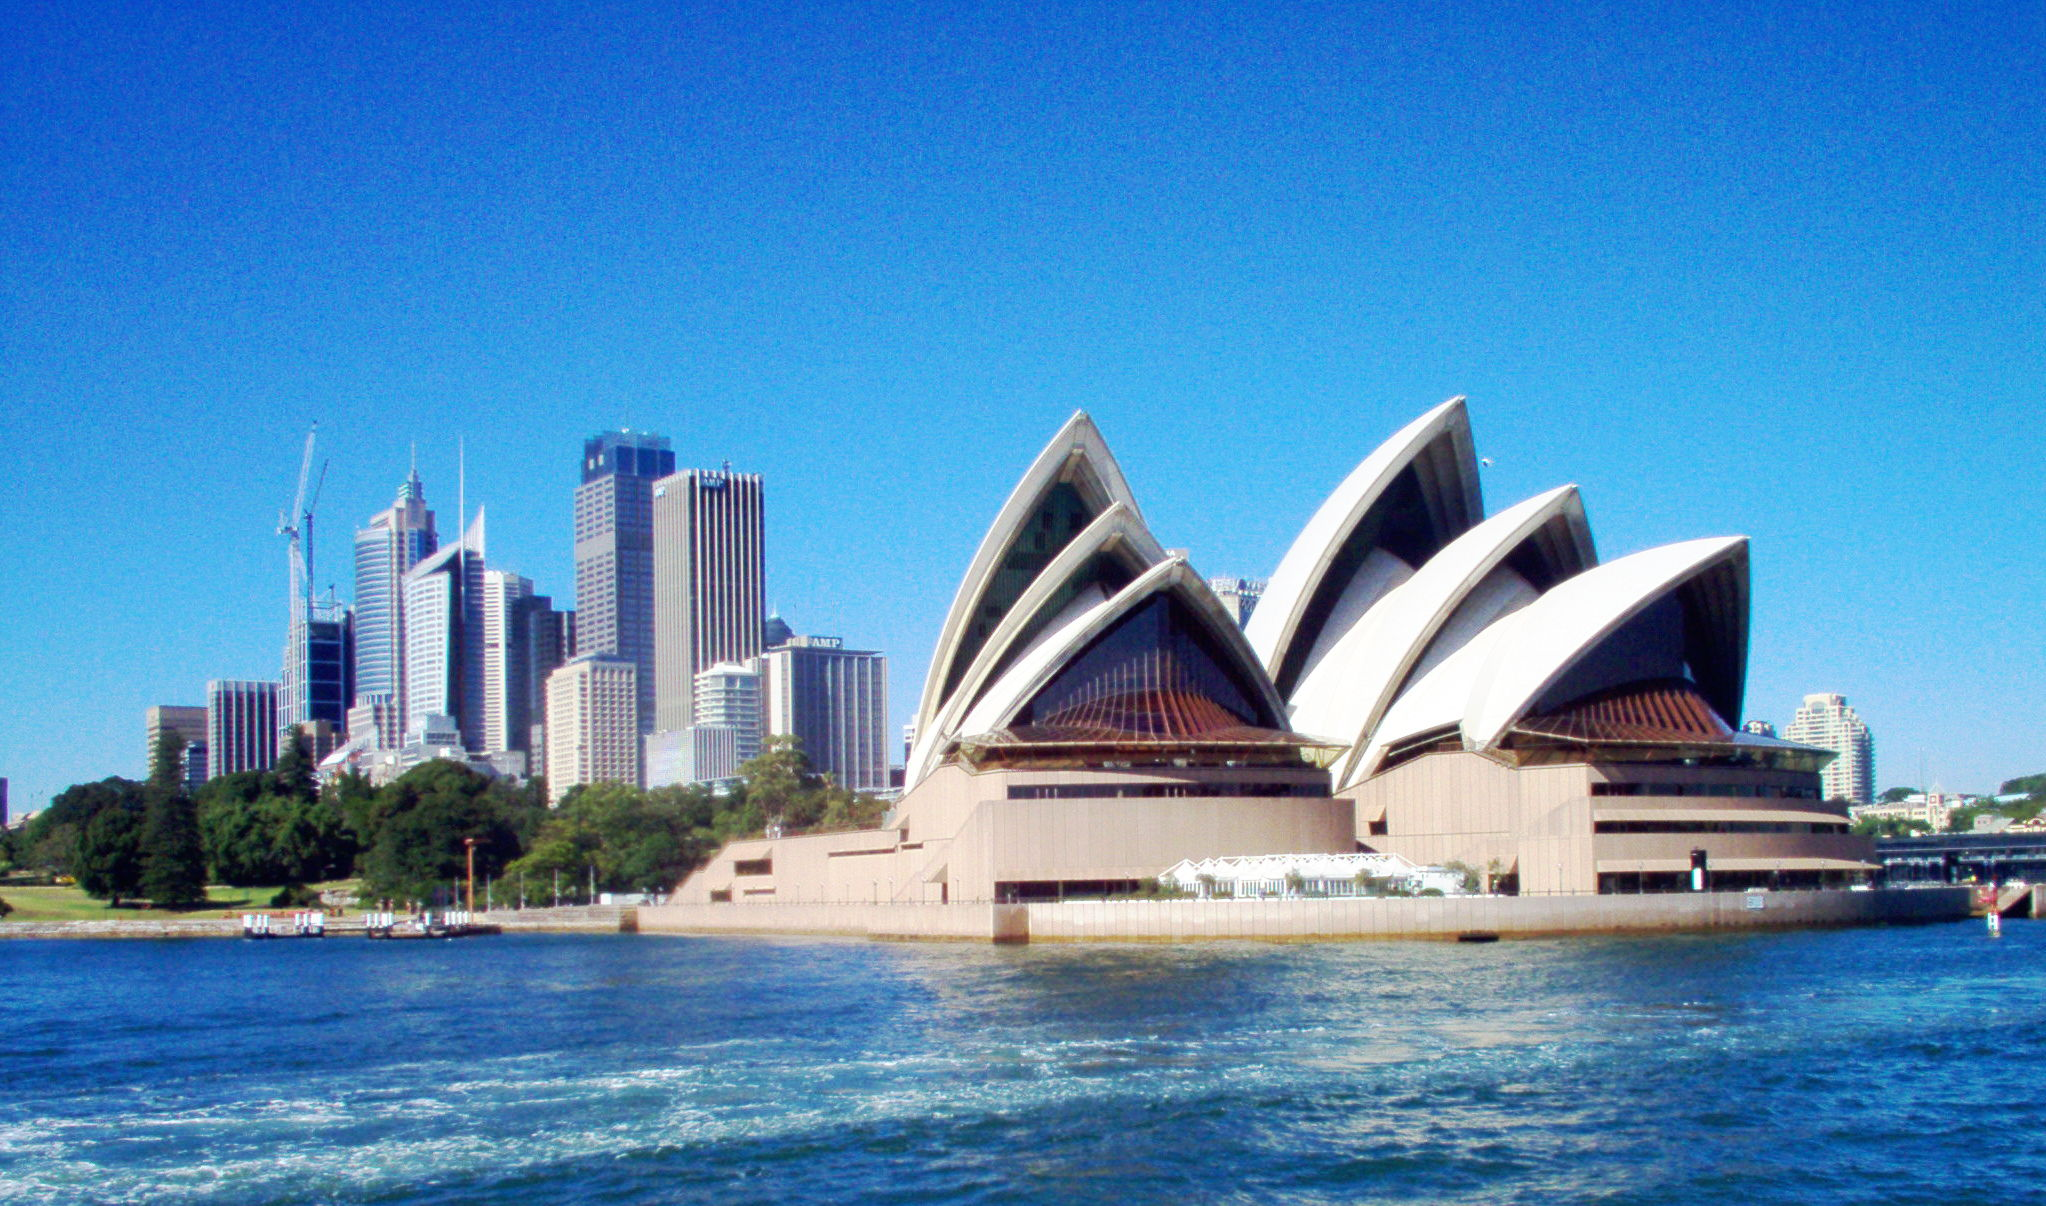 free new wallpapers download marvelous sydney opera house hd nice attractive harbour australia